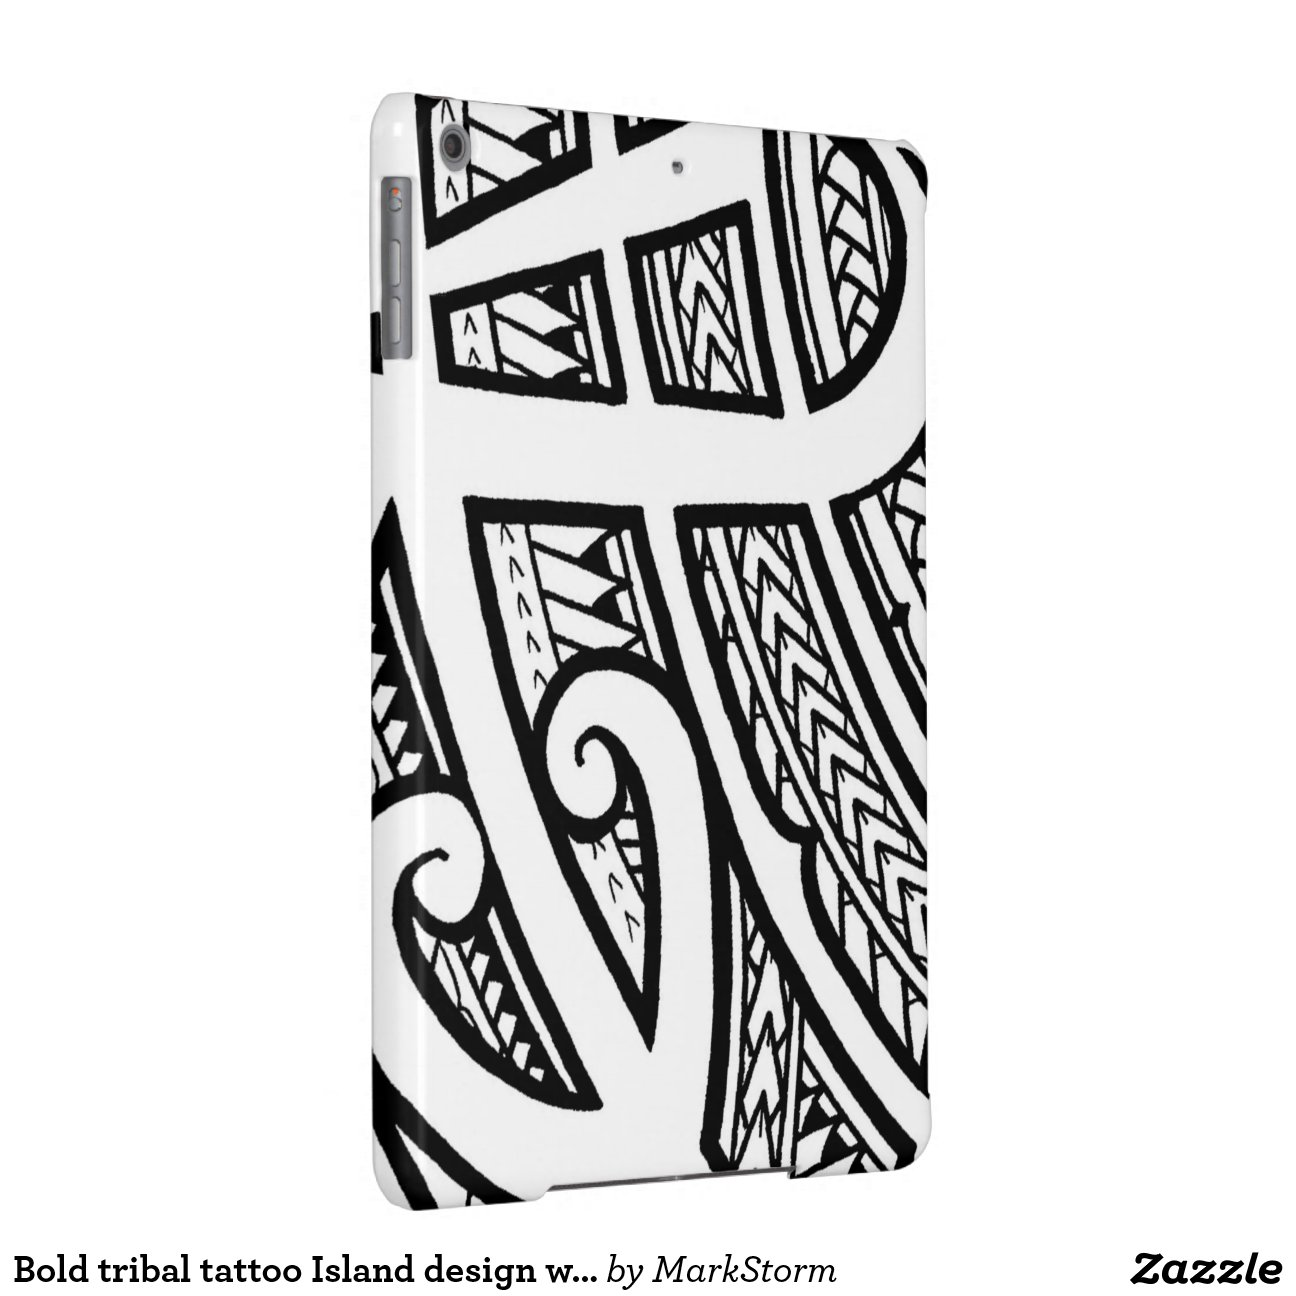 the gallery for easy to draw tribal tattoo designs. Black Bedroom Furniture Sets. Home Design Ideas